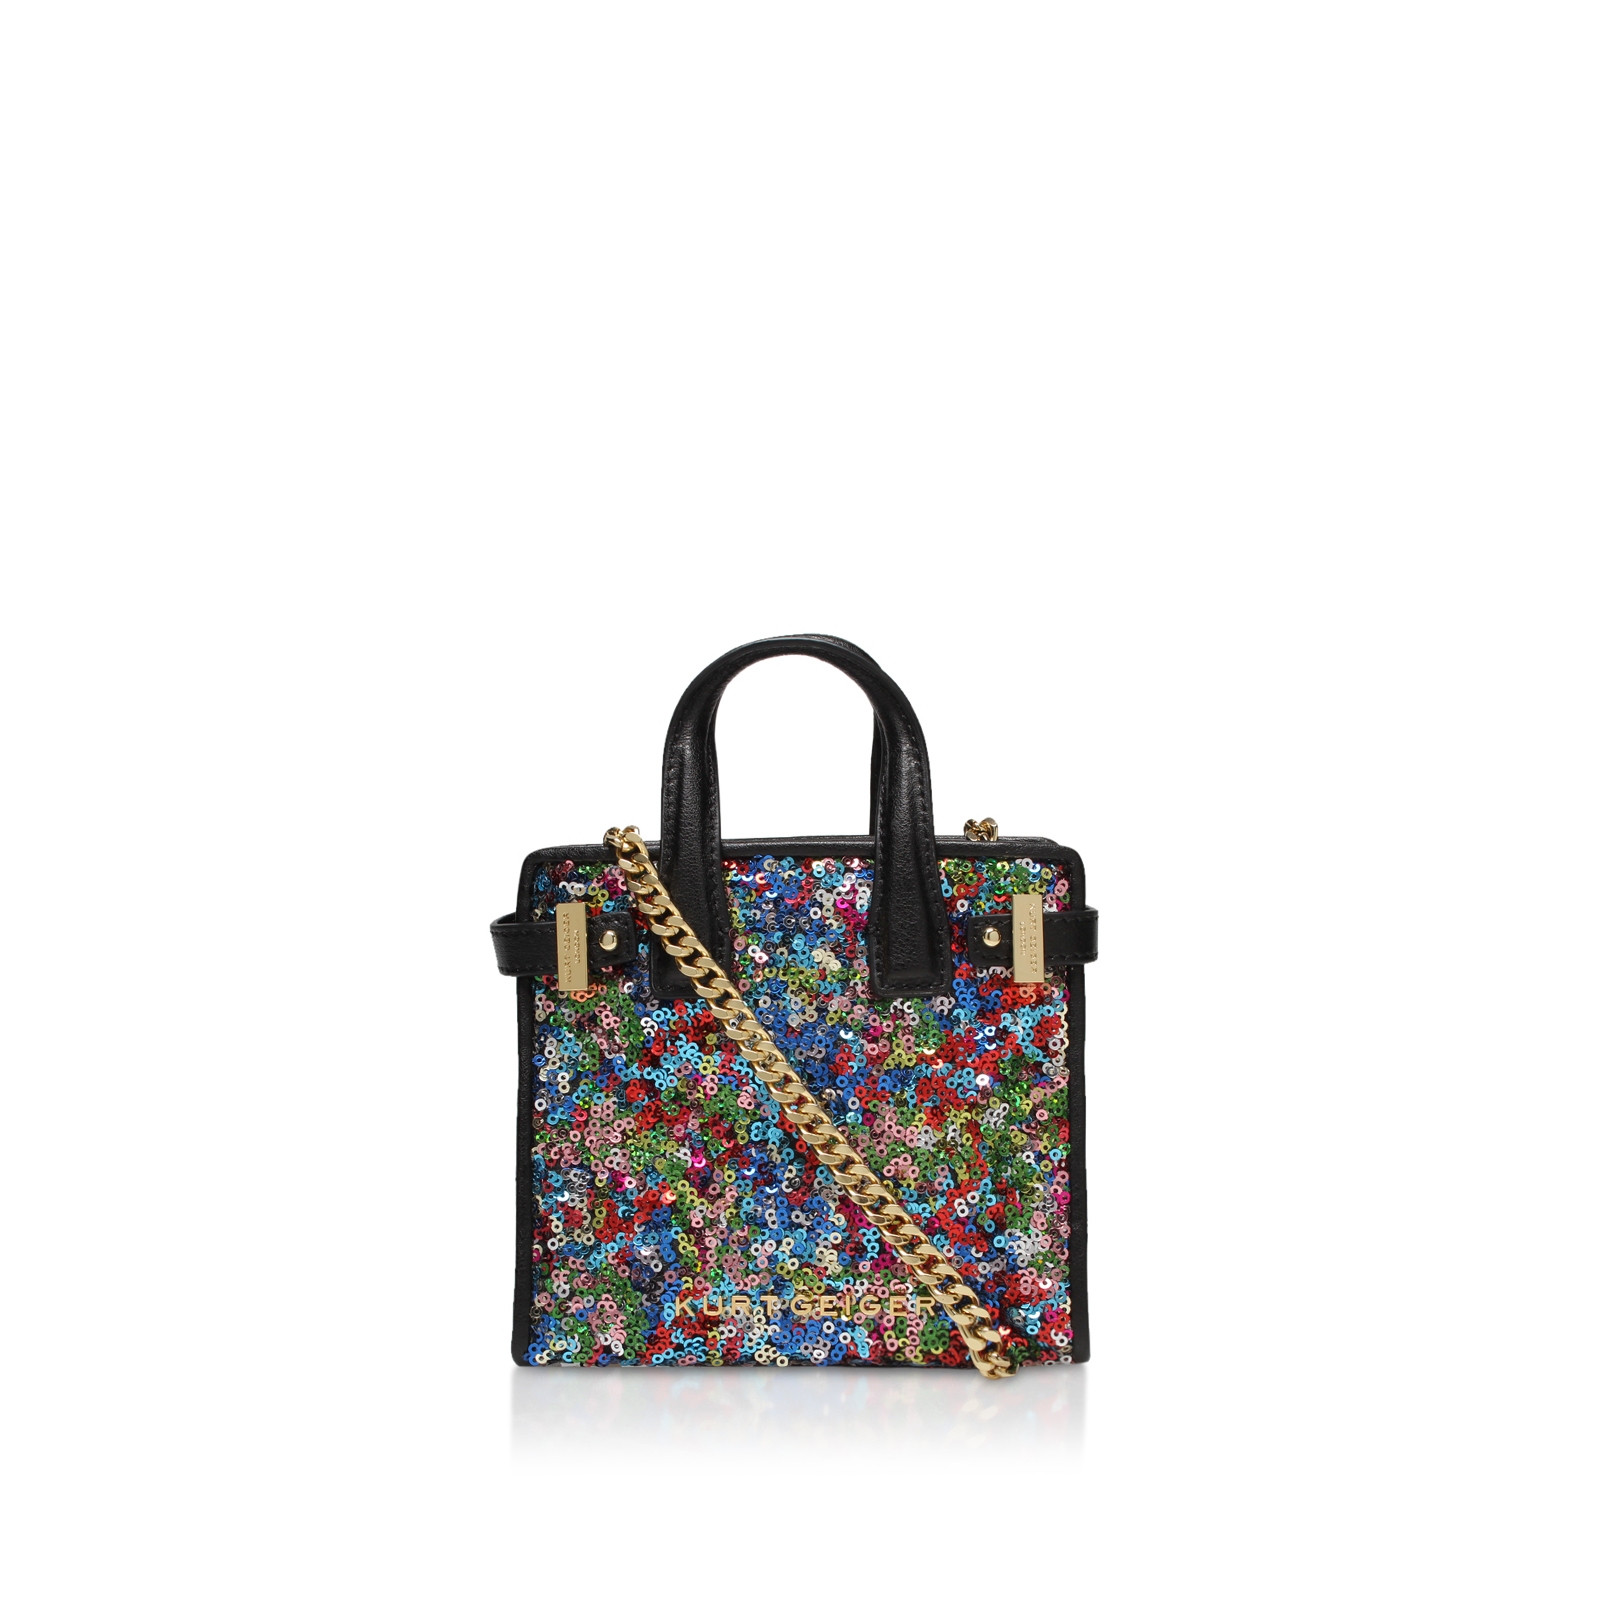 SEQUINS MICRO LONDON TOTE